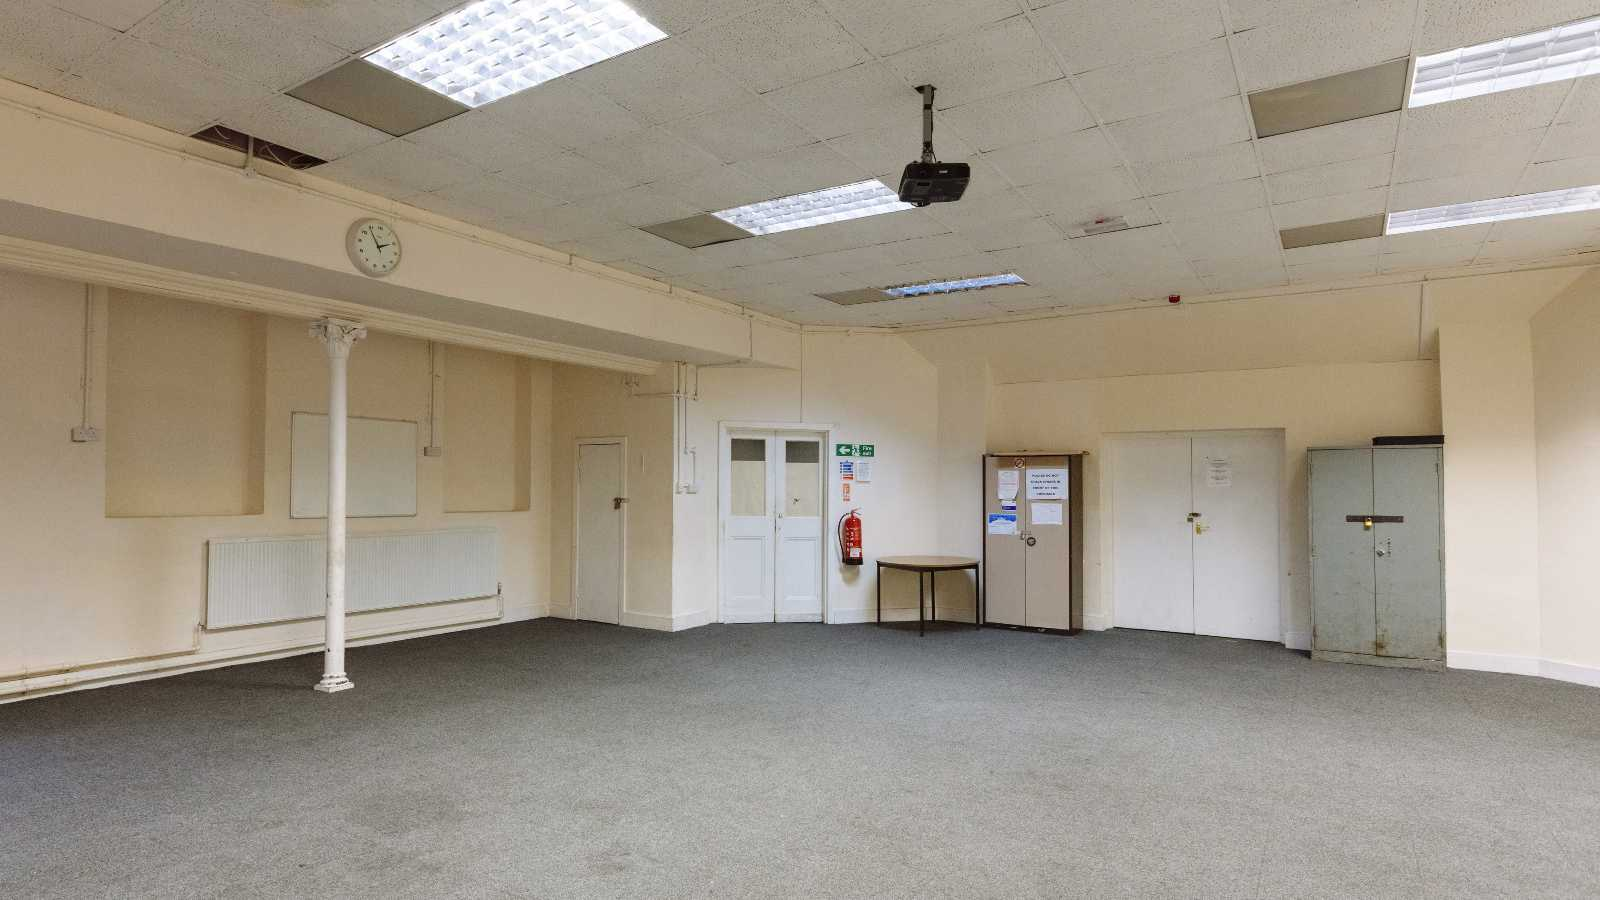 Old Church Room in Upton Park, East London (Carpeted Hall)